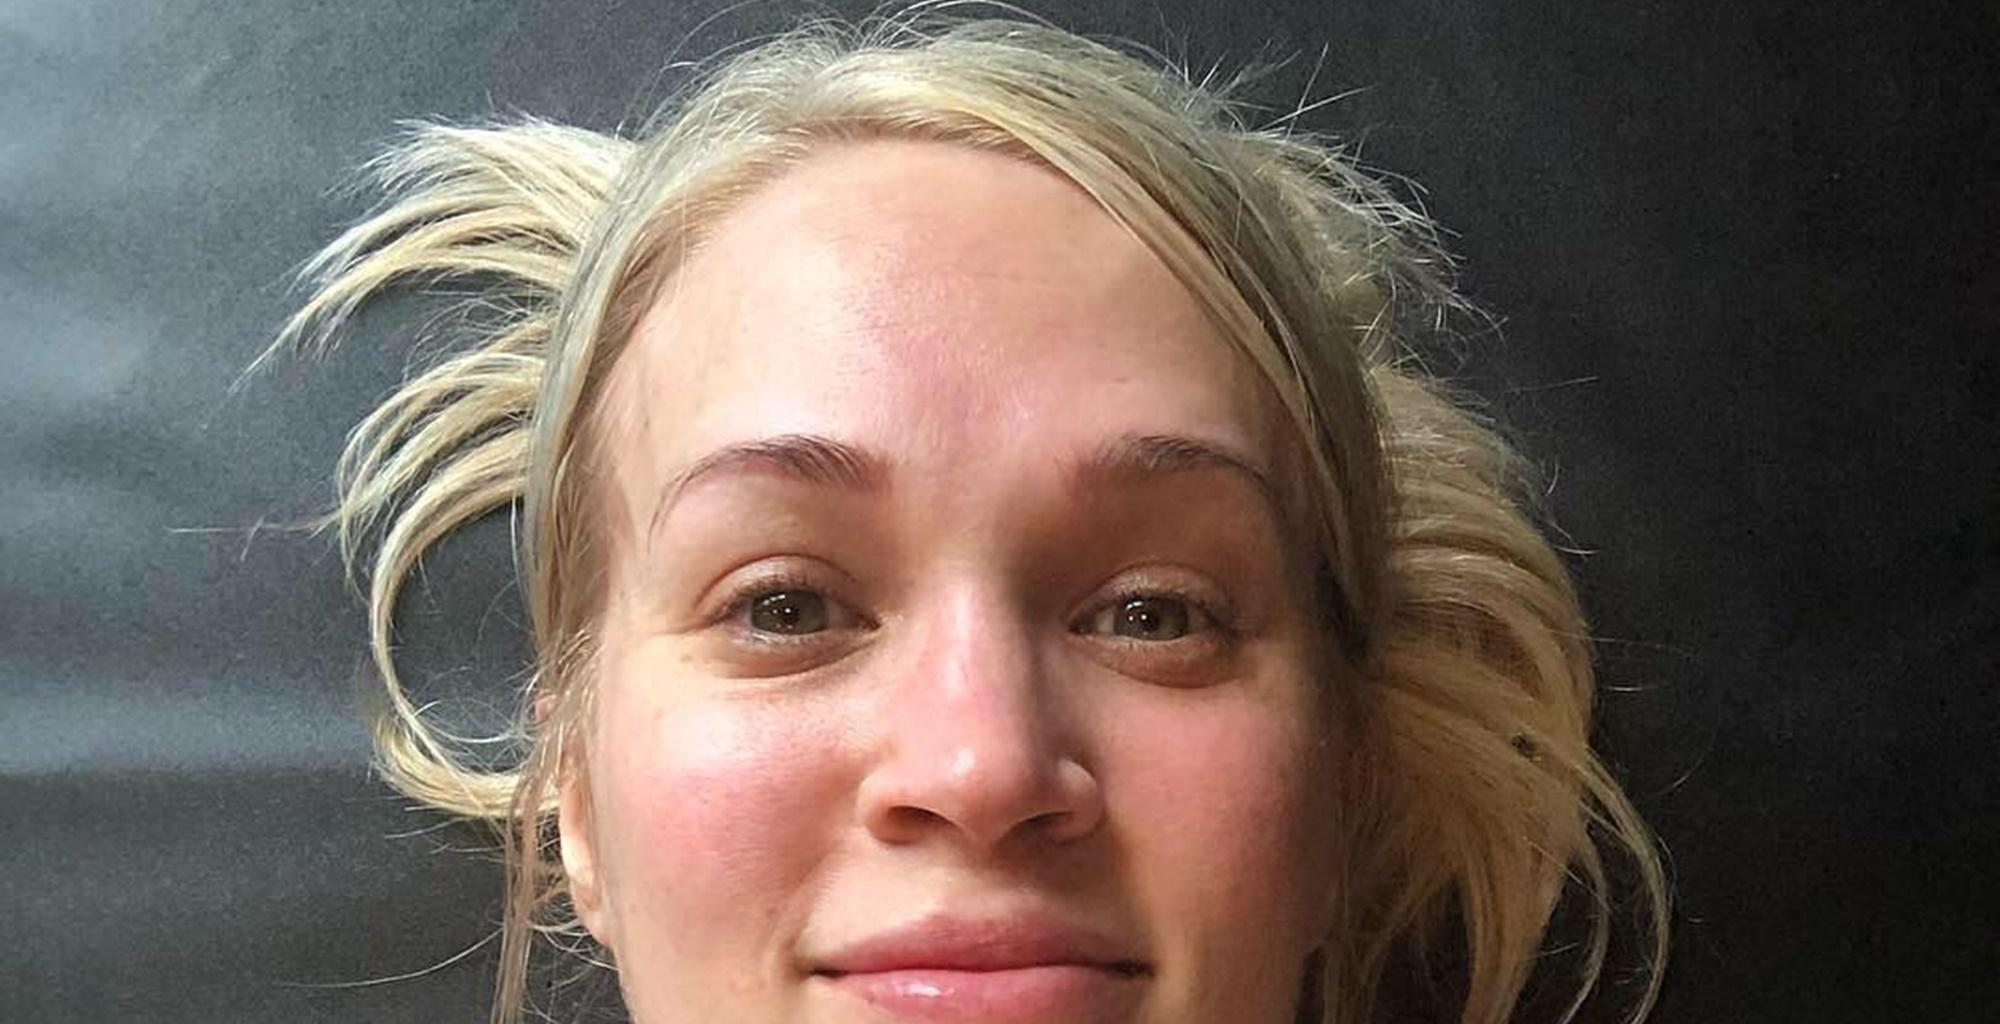 Carrie Underwood Shares Photo Without Makeup Showing Her Scar As She Reveals Weight Struggle After Giving Birth